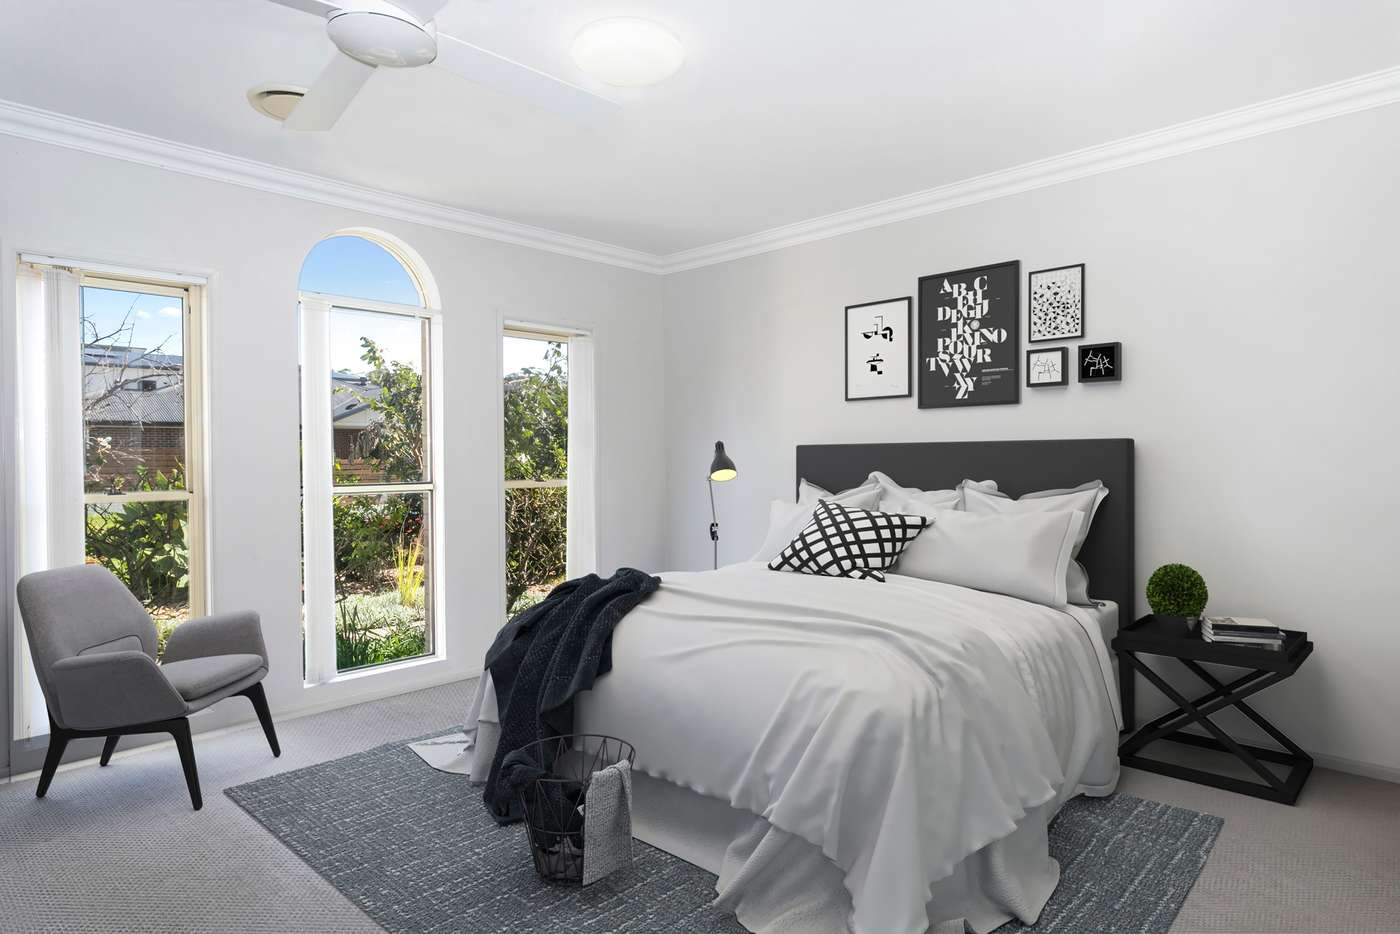 Fifth view of Homely house listing, 5 The Meadows, Mollymook NSW 2539